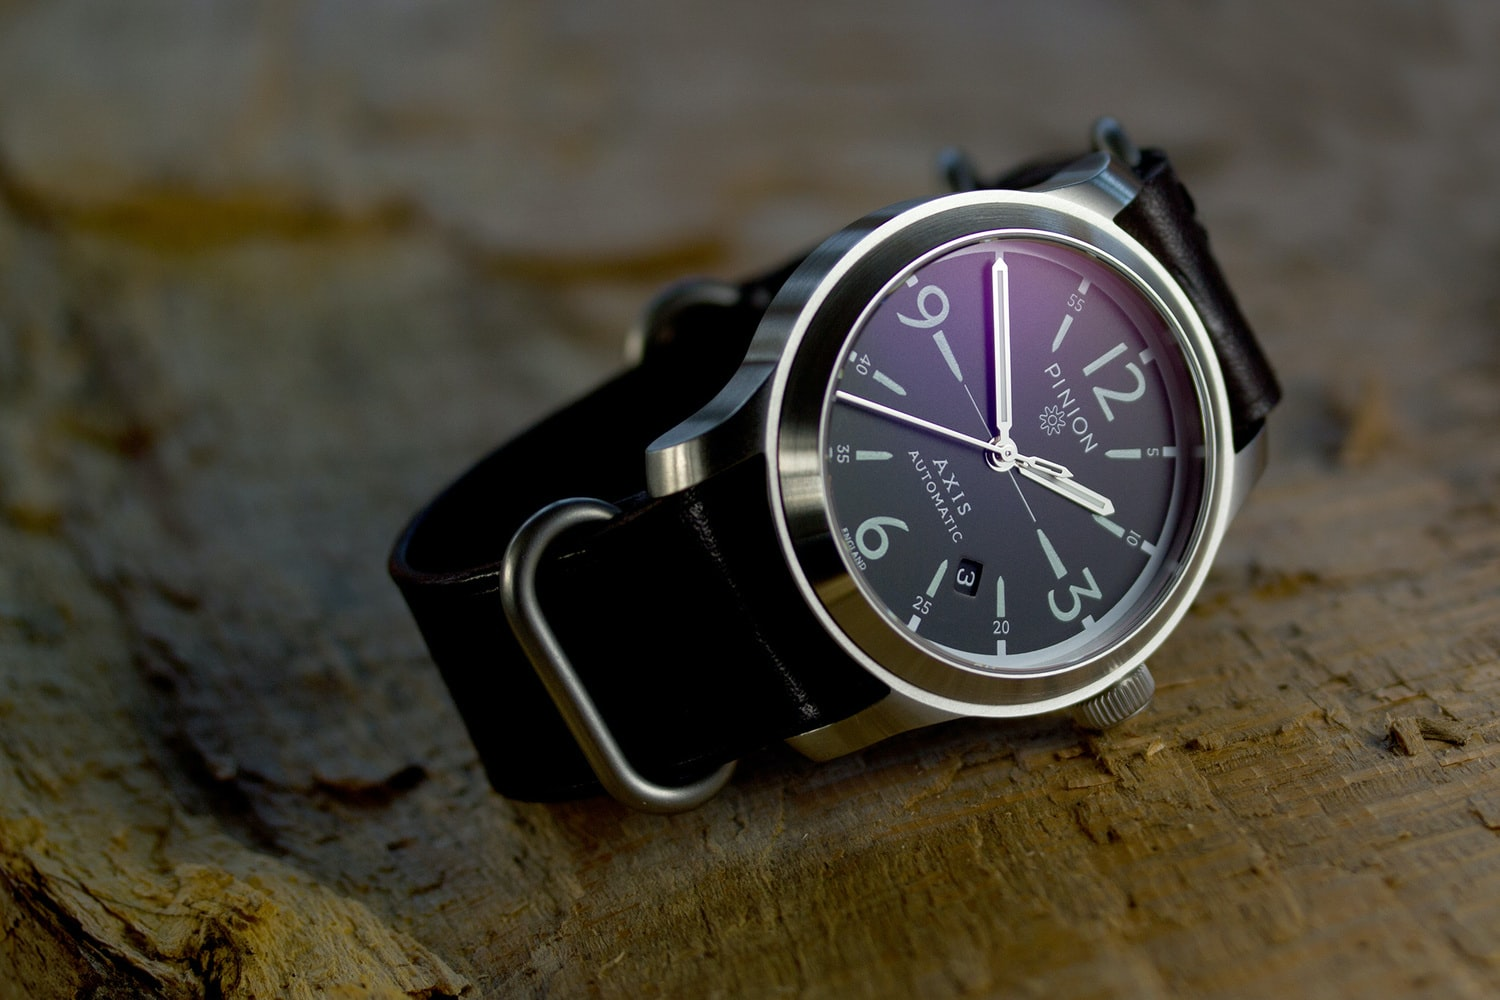 Introducing The Pinion Axis A New Independent Watch From